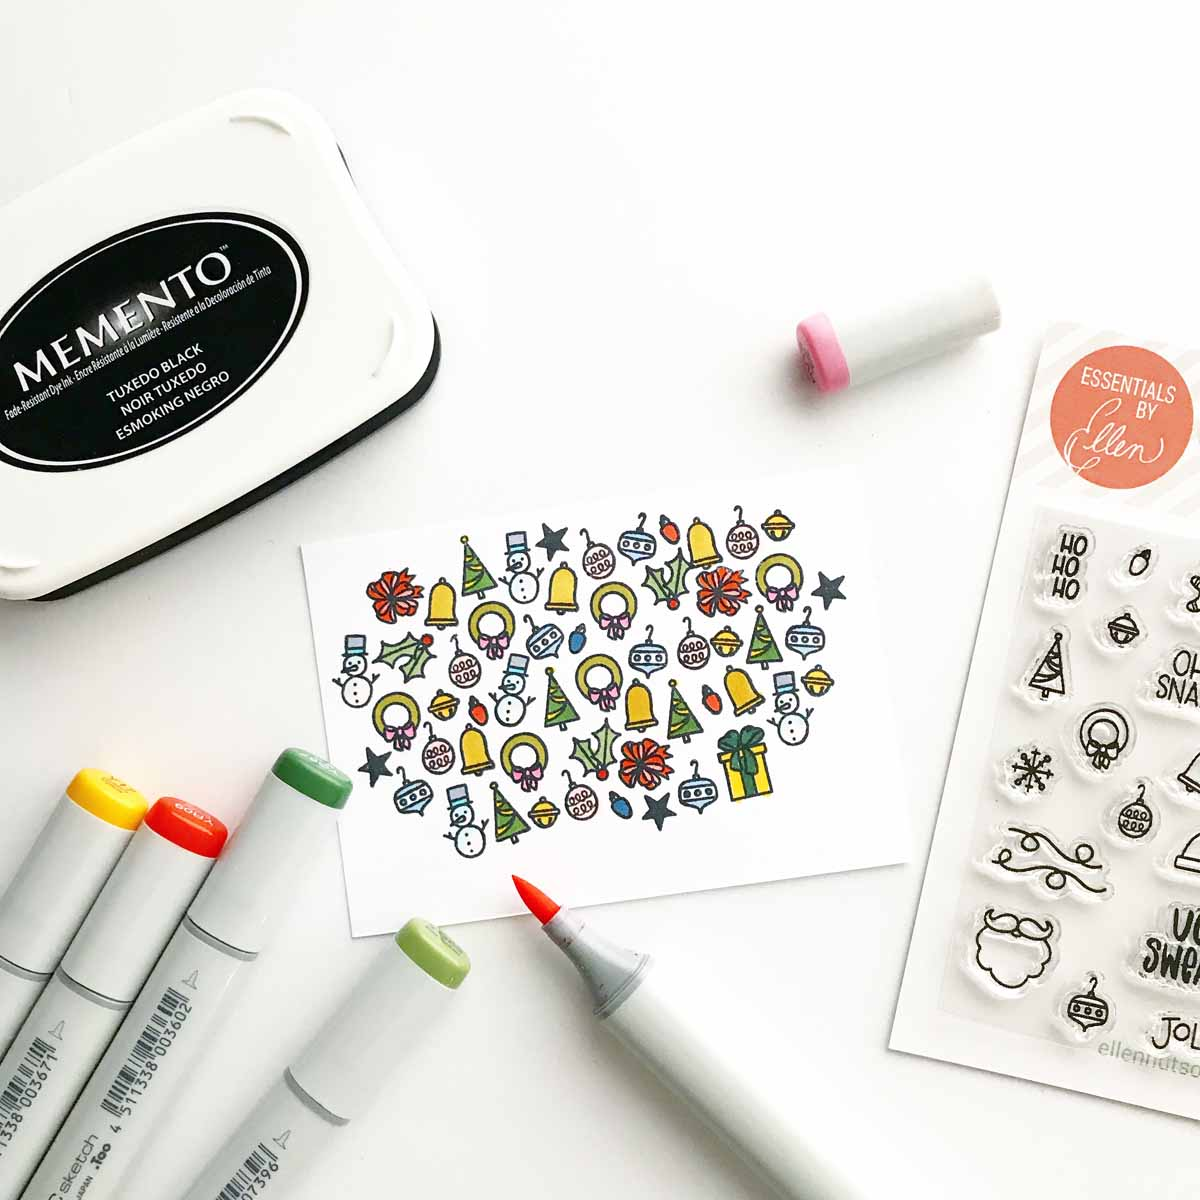 Collection of tiny Essentials by Ellen images colored with Copic markers